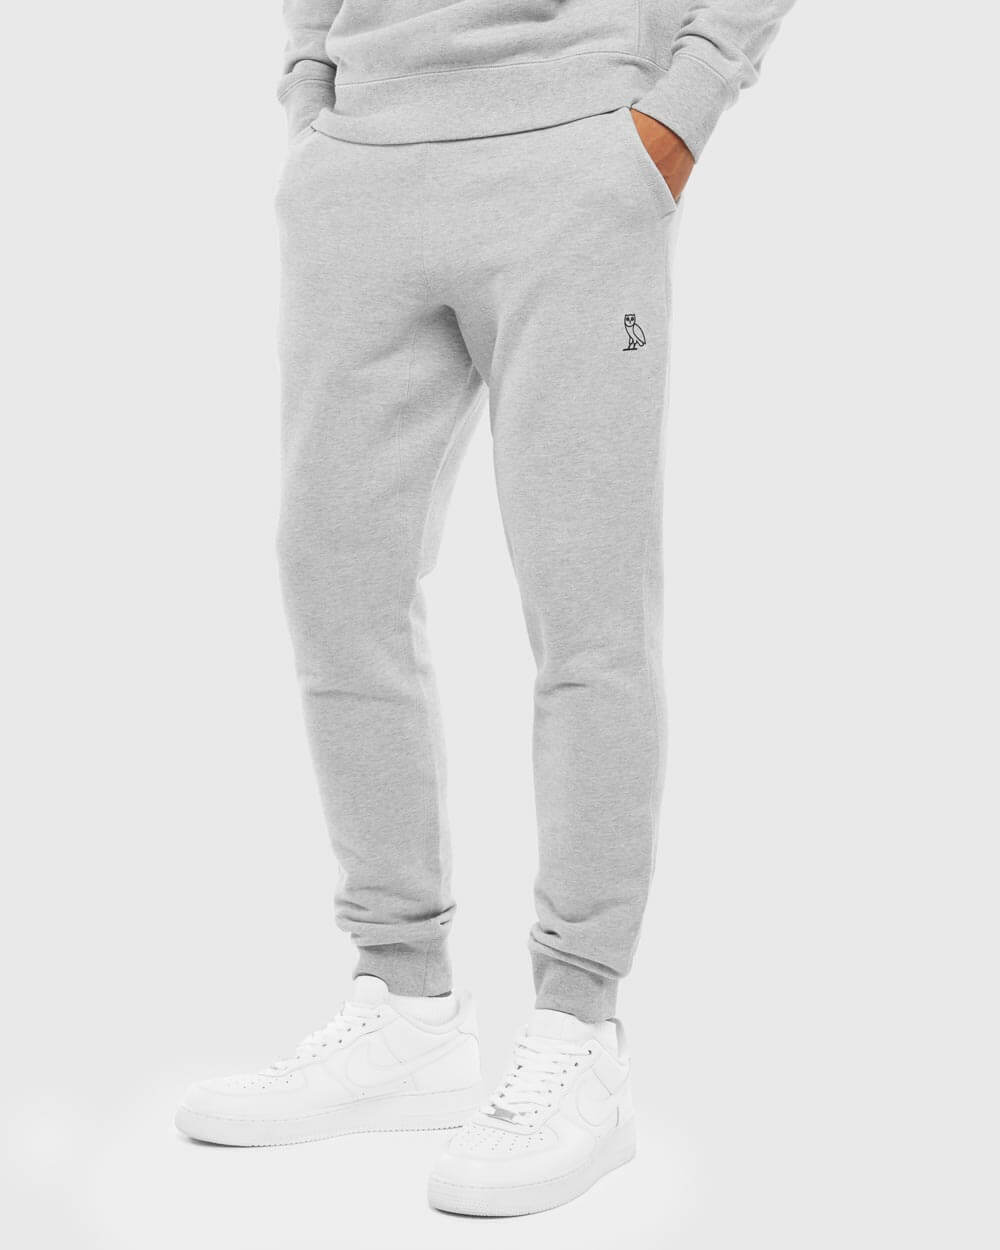 MID-WEIGHT FRENCH TERRY SWEATPANT - HEATHER GREY